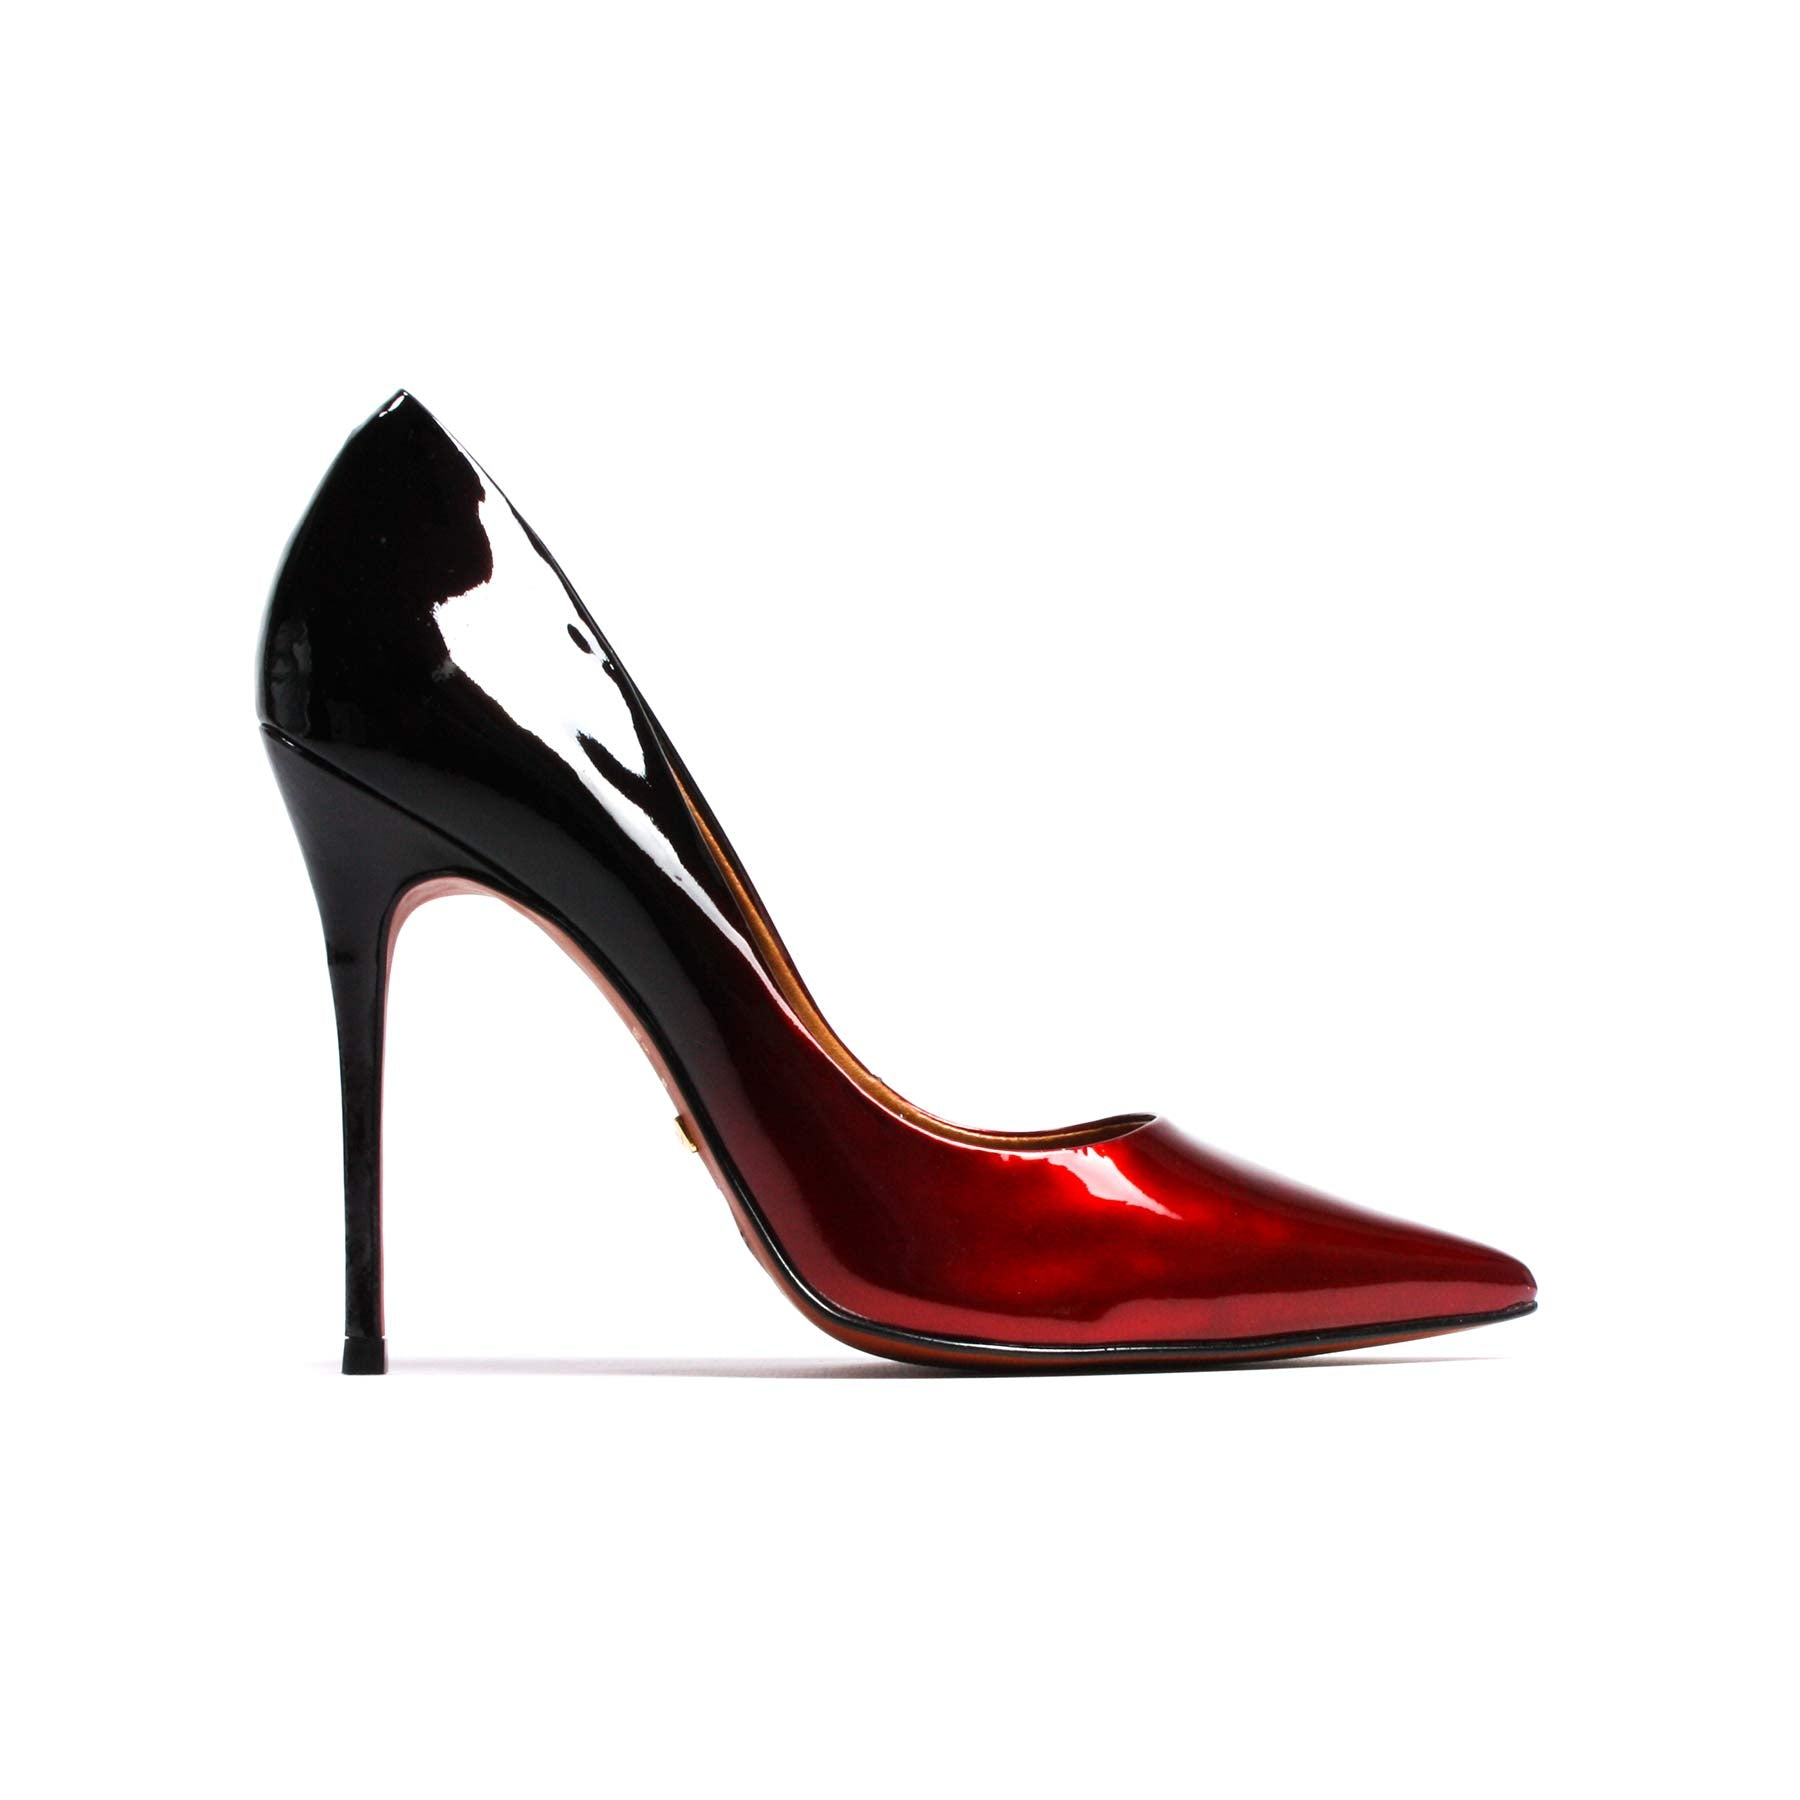 Teeva Gradient Patent Leather